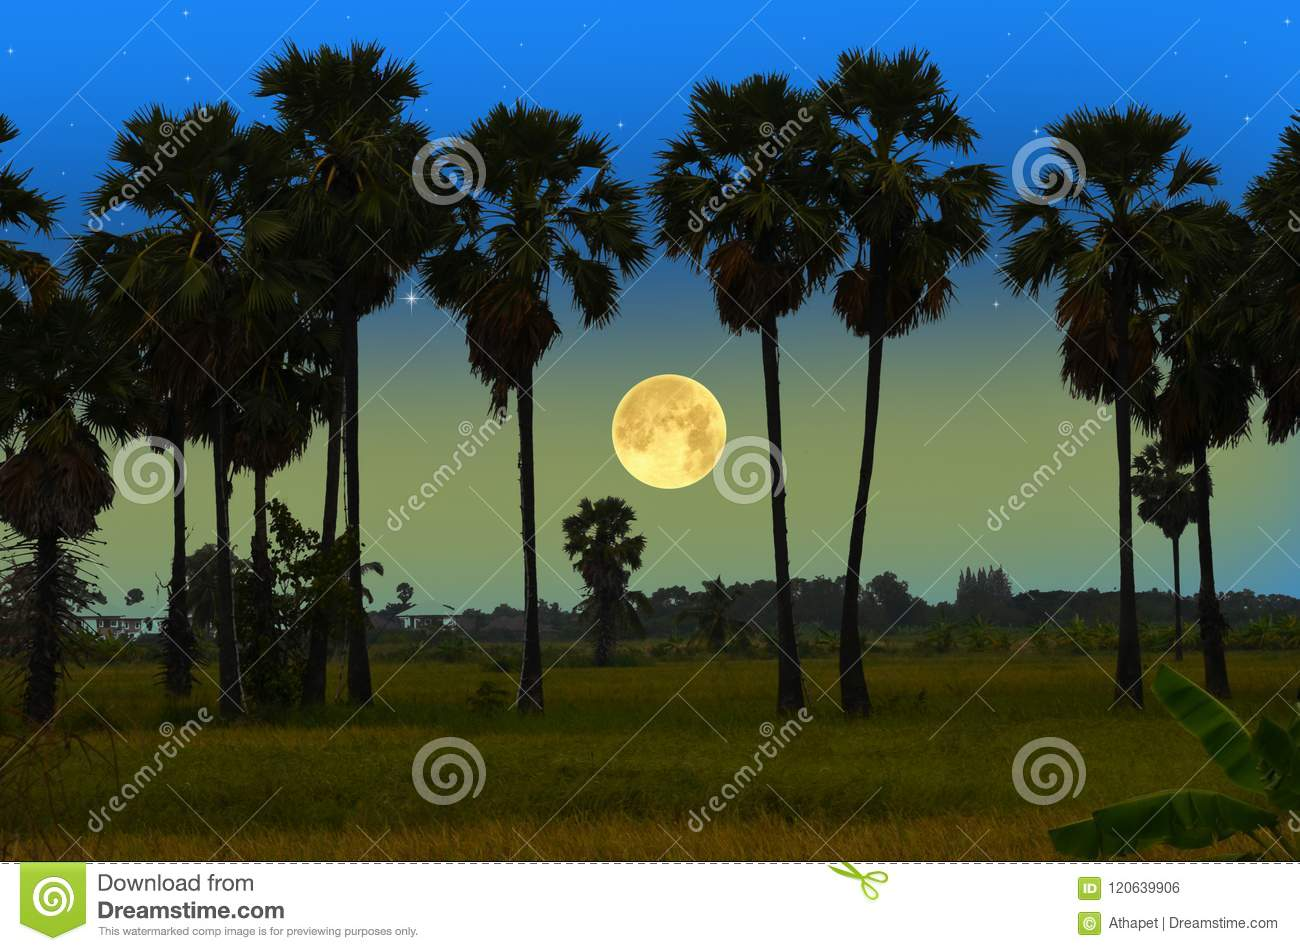 big full moon and palms in the winter evening stock illustration